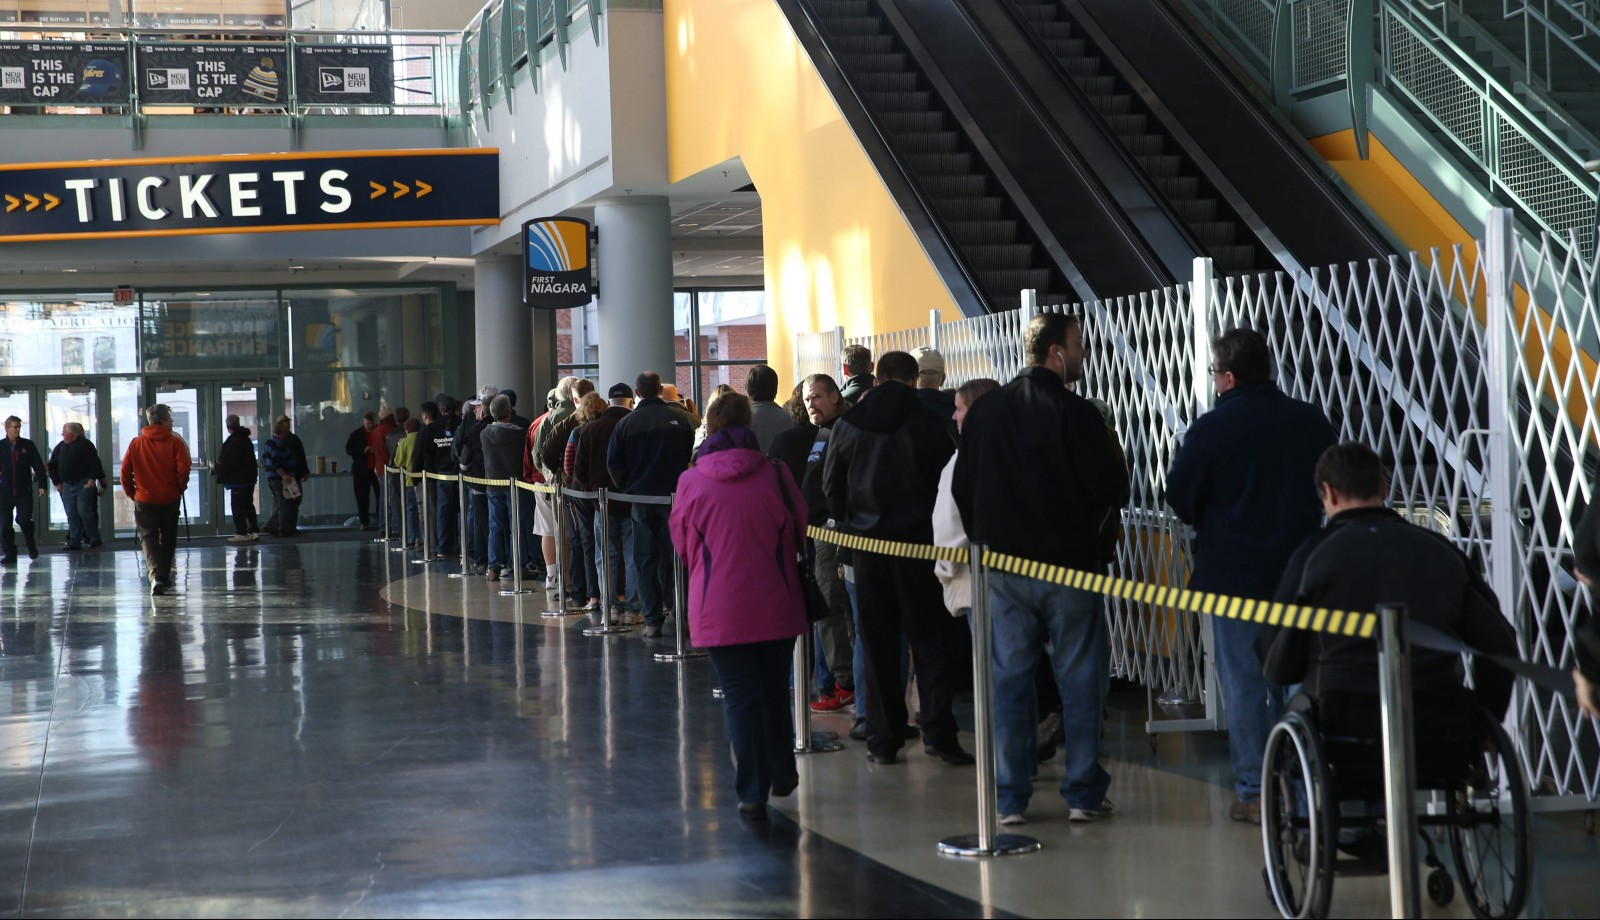 A line formed inside the First Niagara Center to buy Bruce Springsteen tickets as they went on sale Friday. (Sharon Cantillon/Buffalo News)